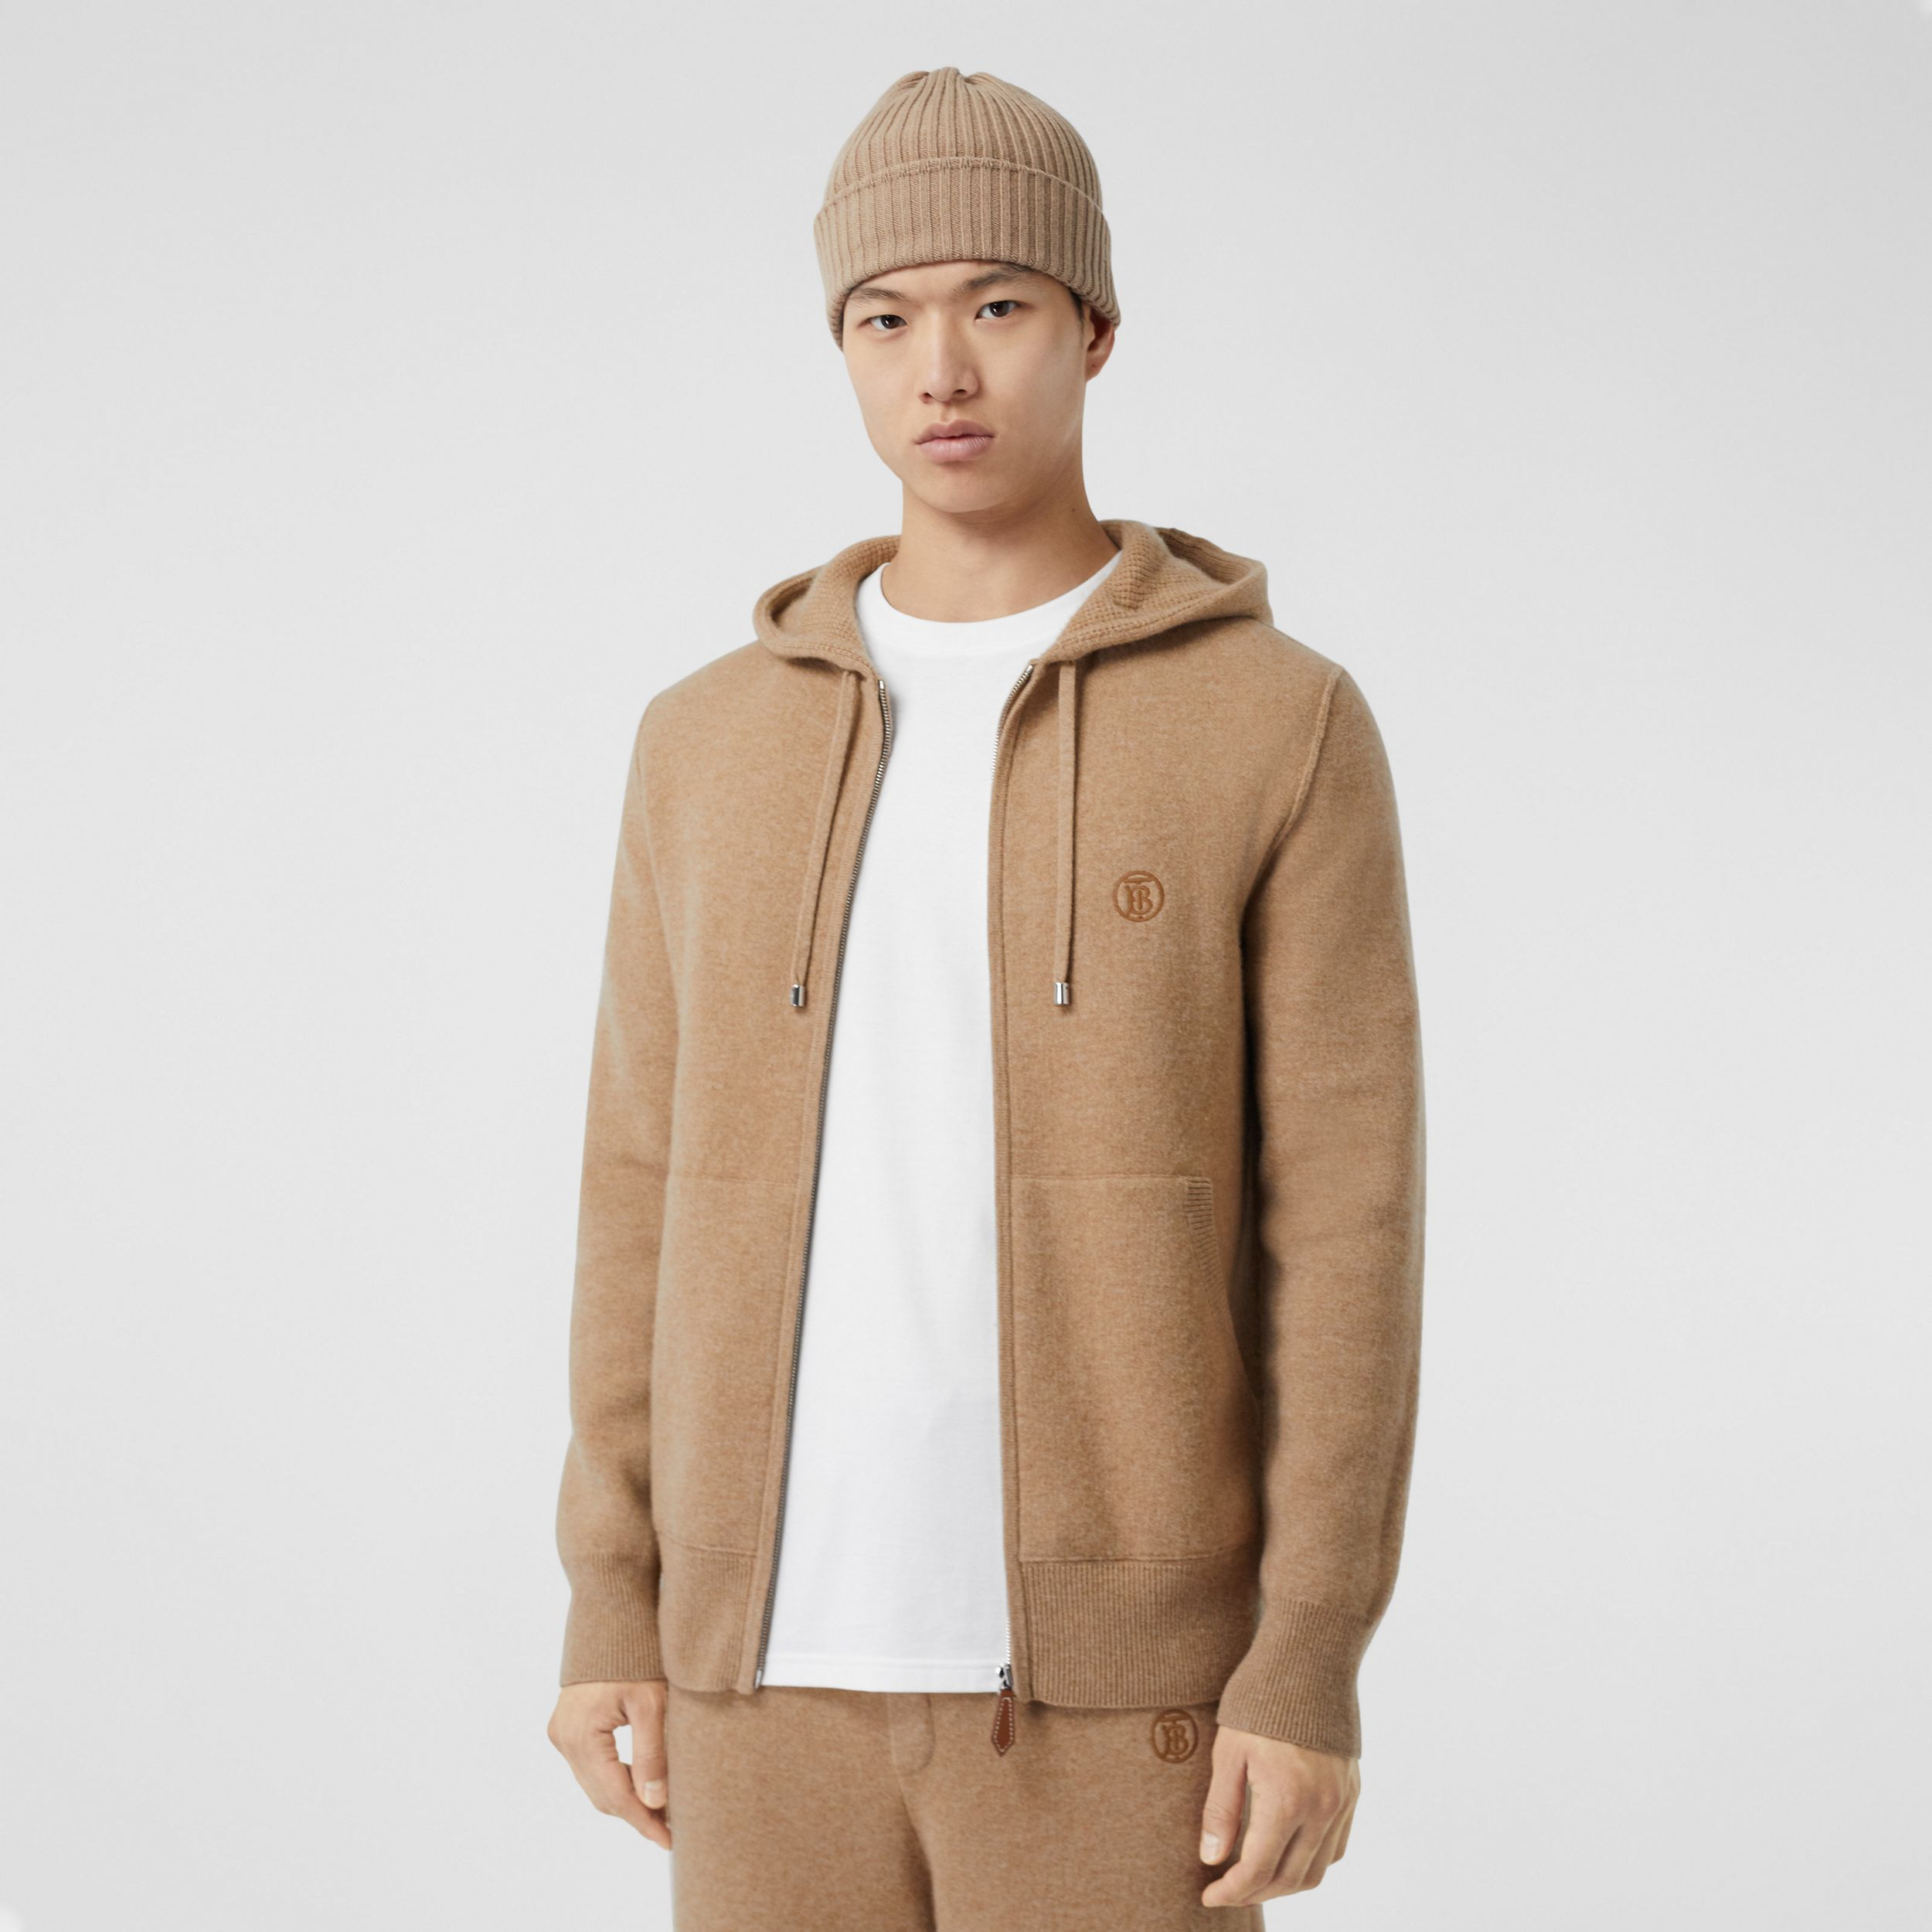 Monogram Motif Cashmere Blend Hooded Top in Pale Coffee - Men | Burberry - 1